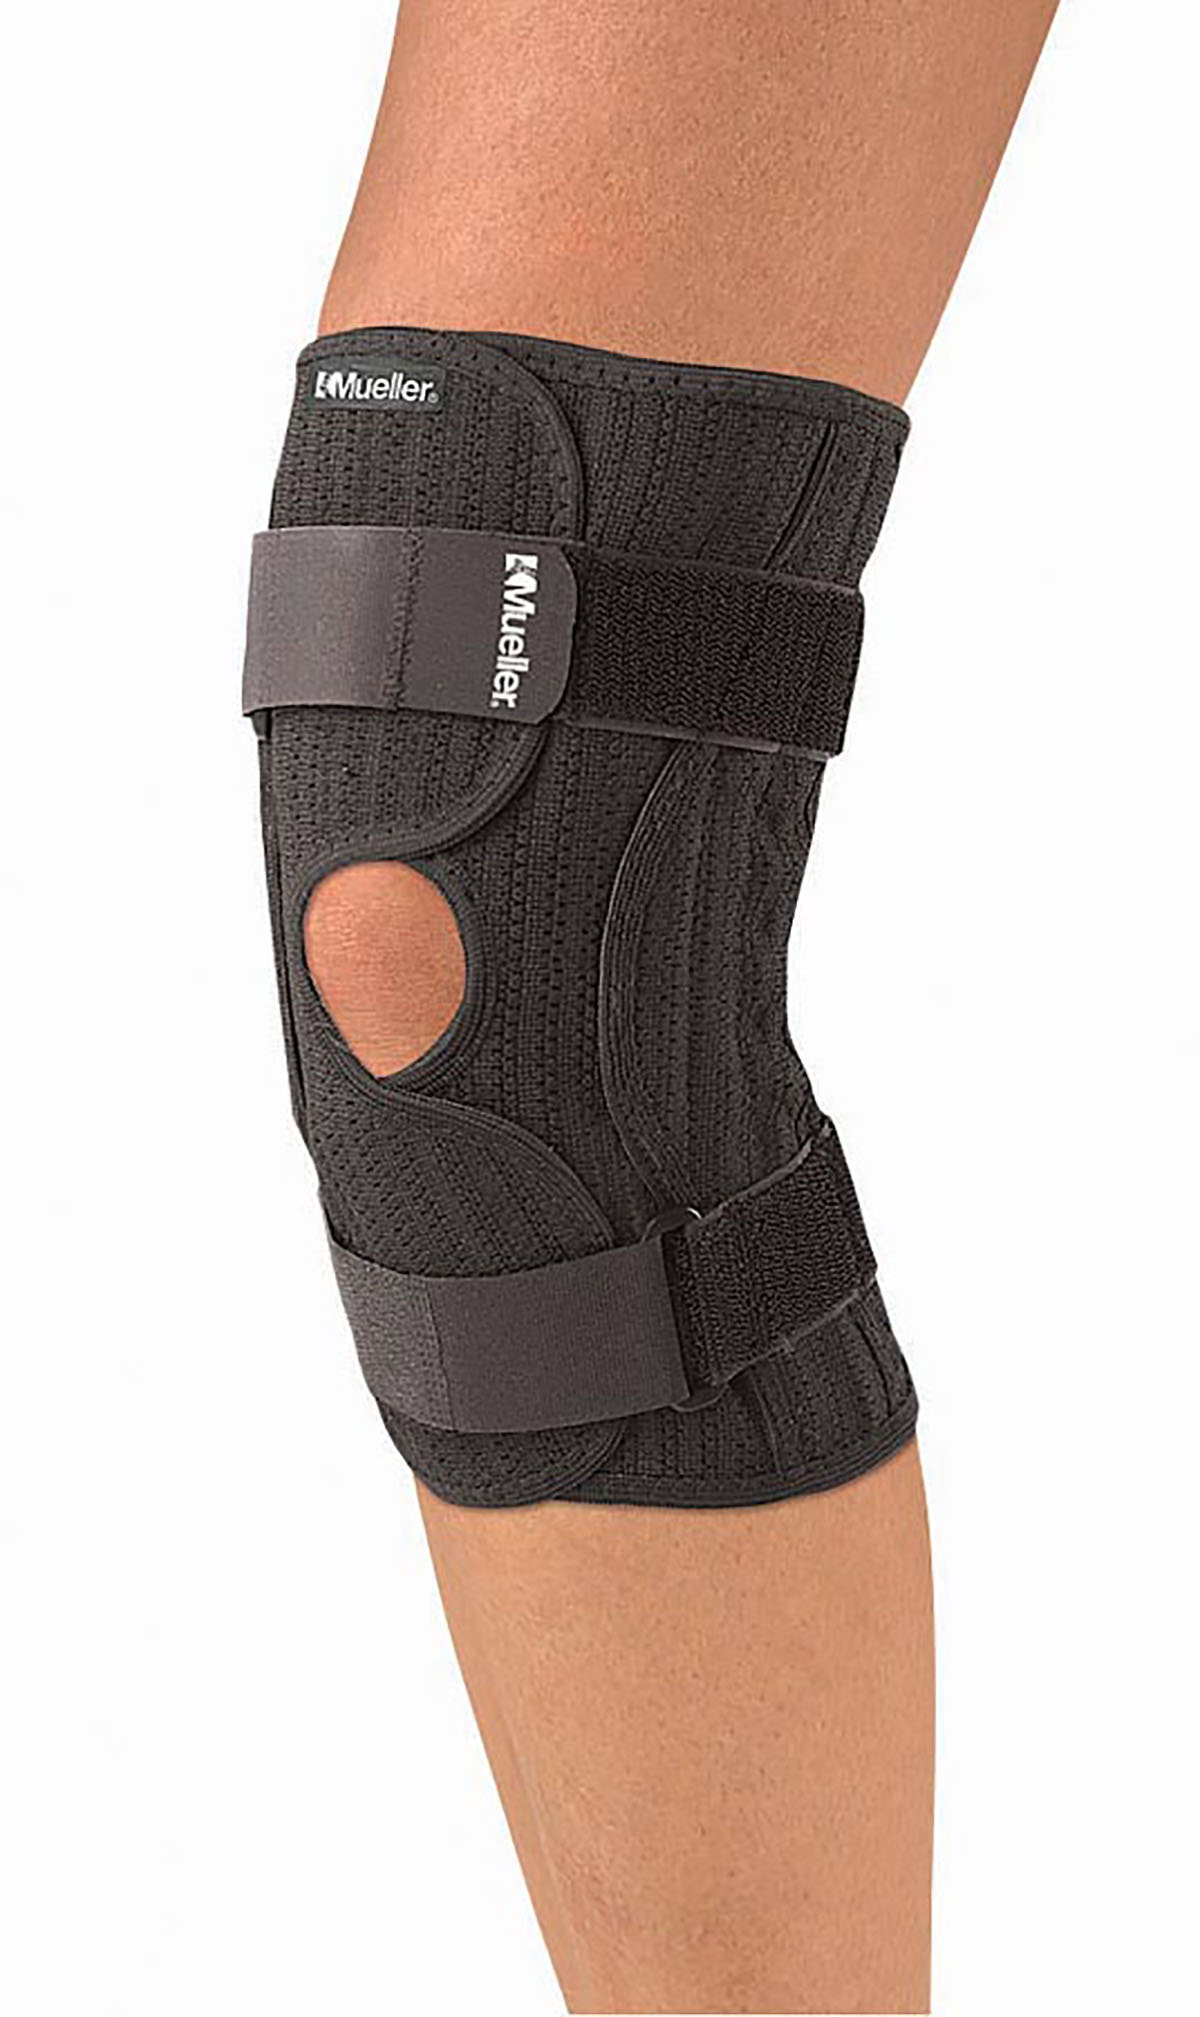 mueller-splints-support-brace.jpg